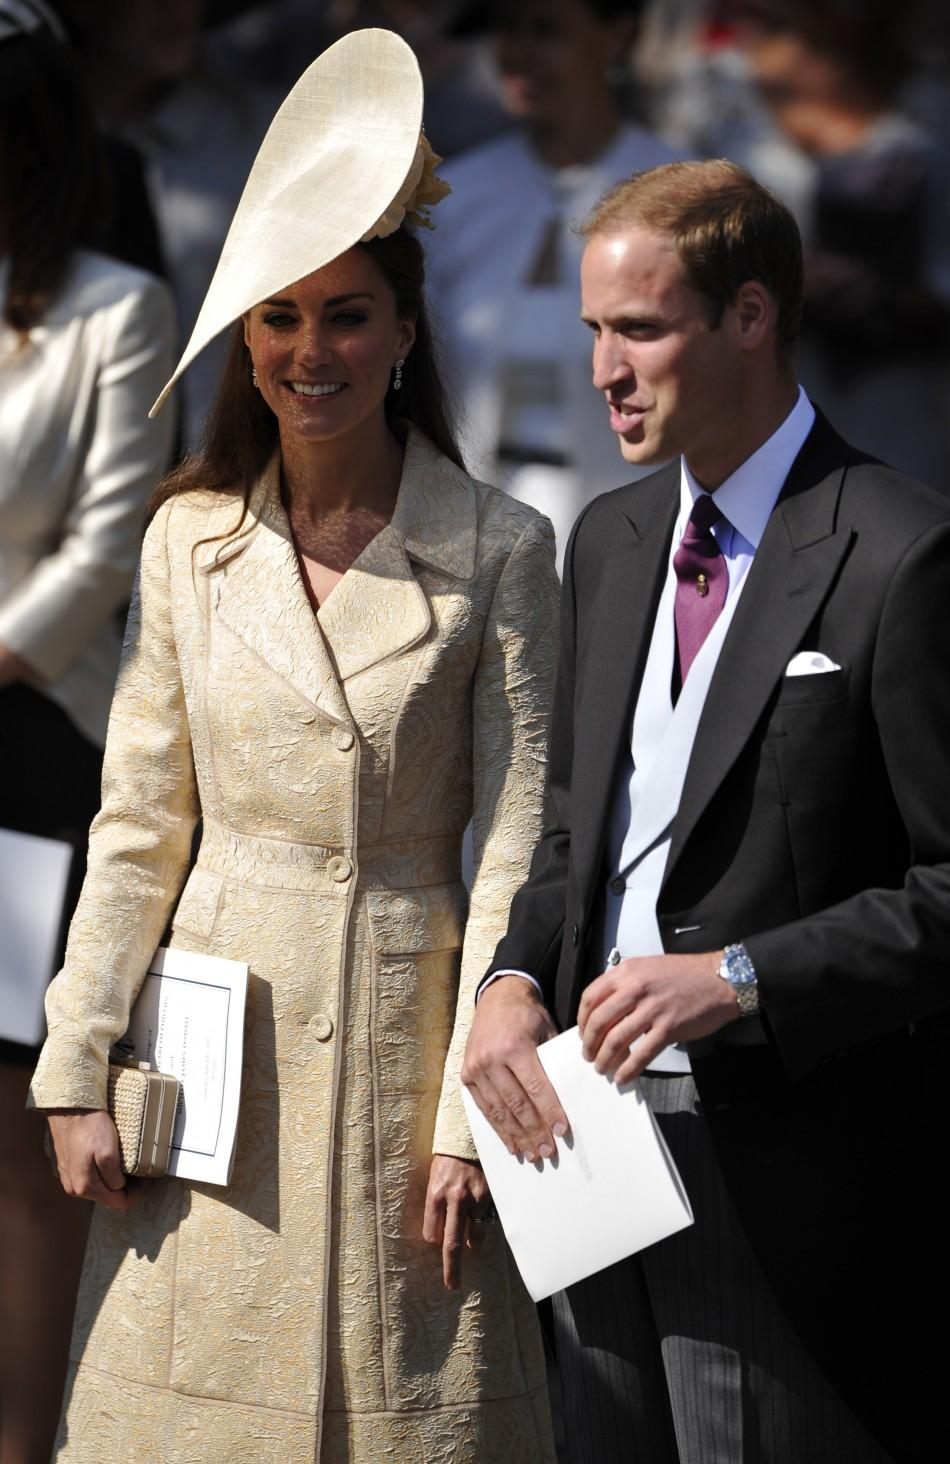 Catherine Duchess of Cambridge and Prince William leave after the marriage of Britain's Zara Phillips and Mike Tindall at Canongate Kirk in Edinburgh